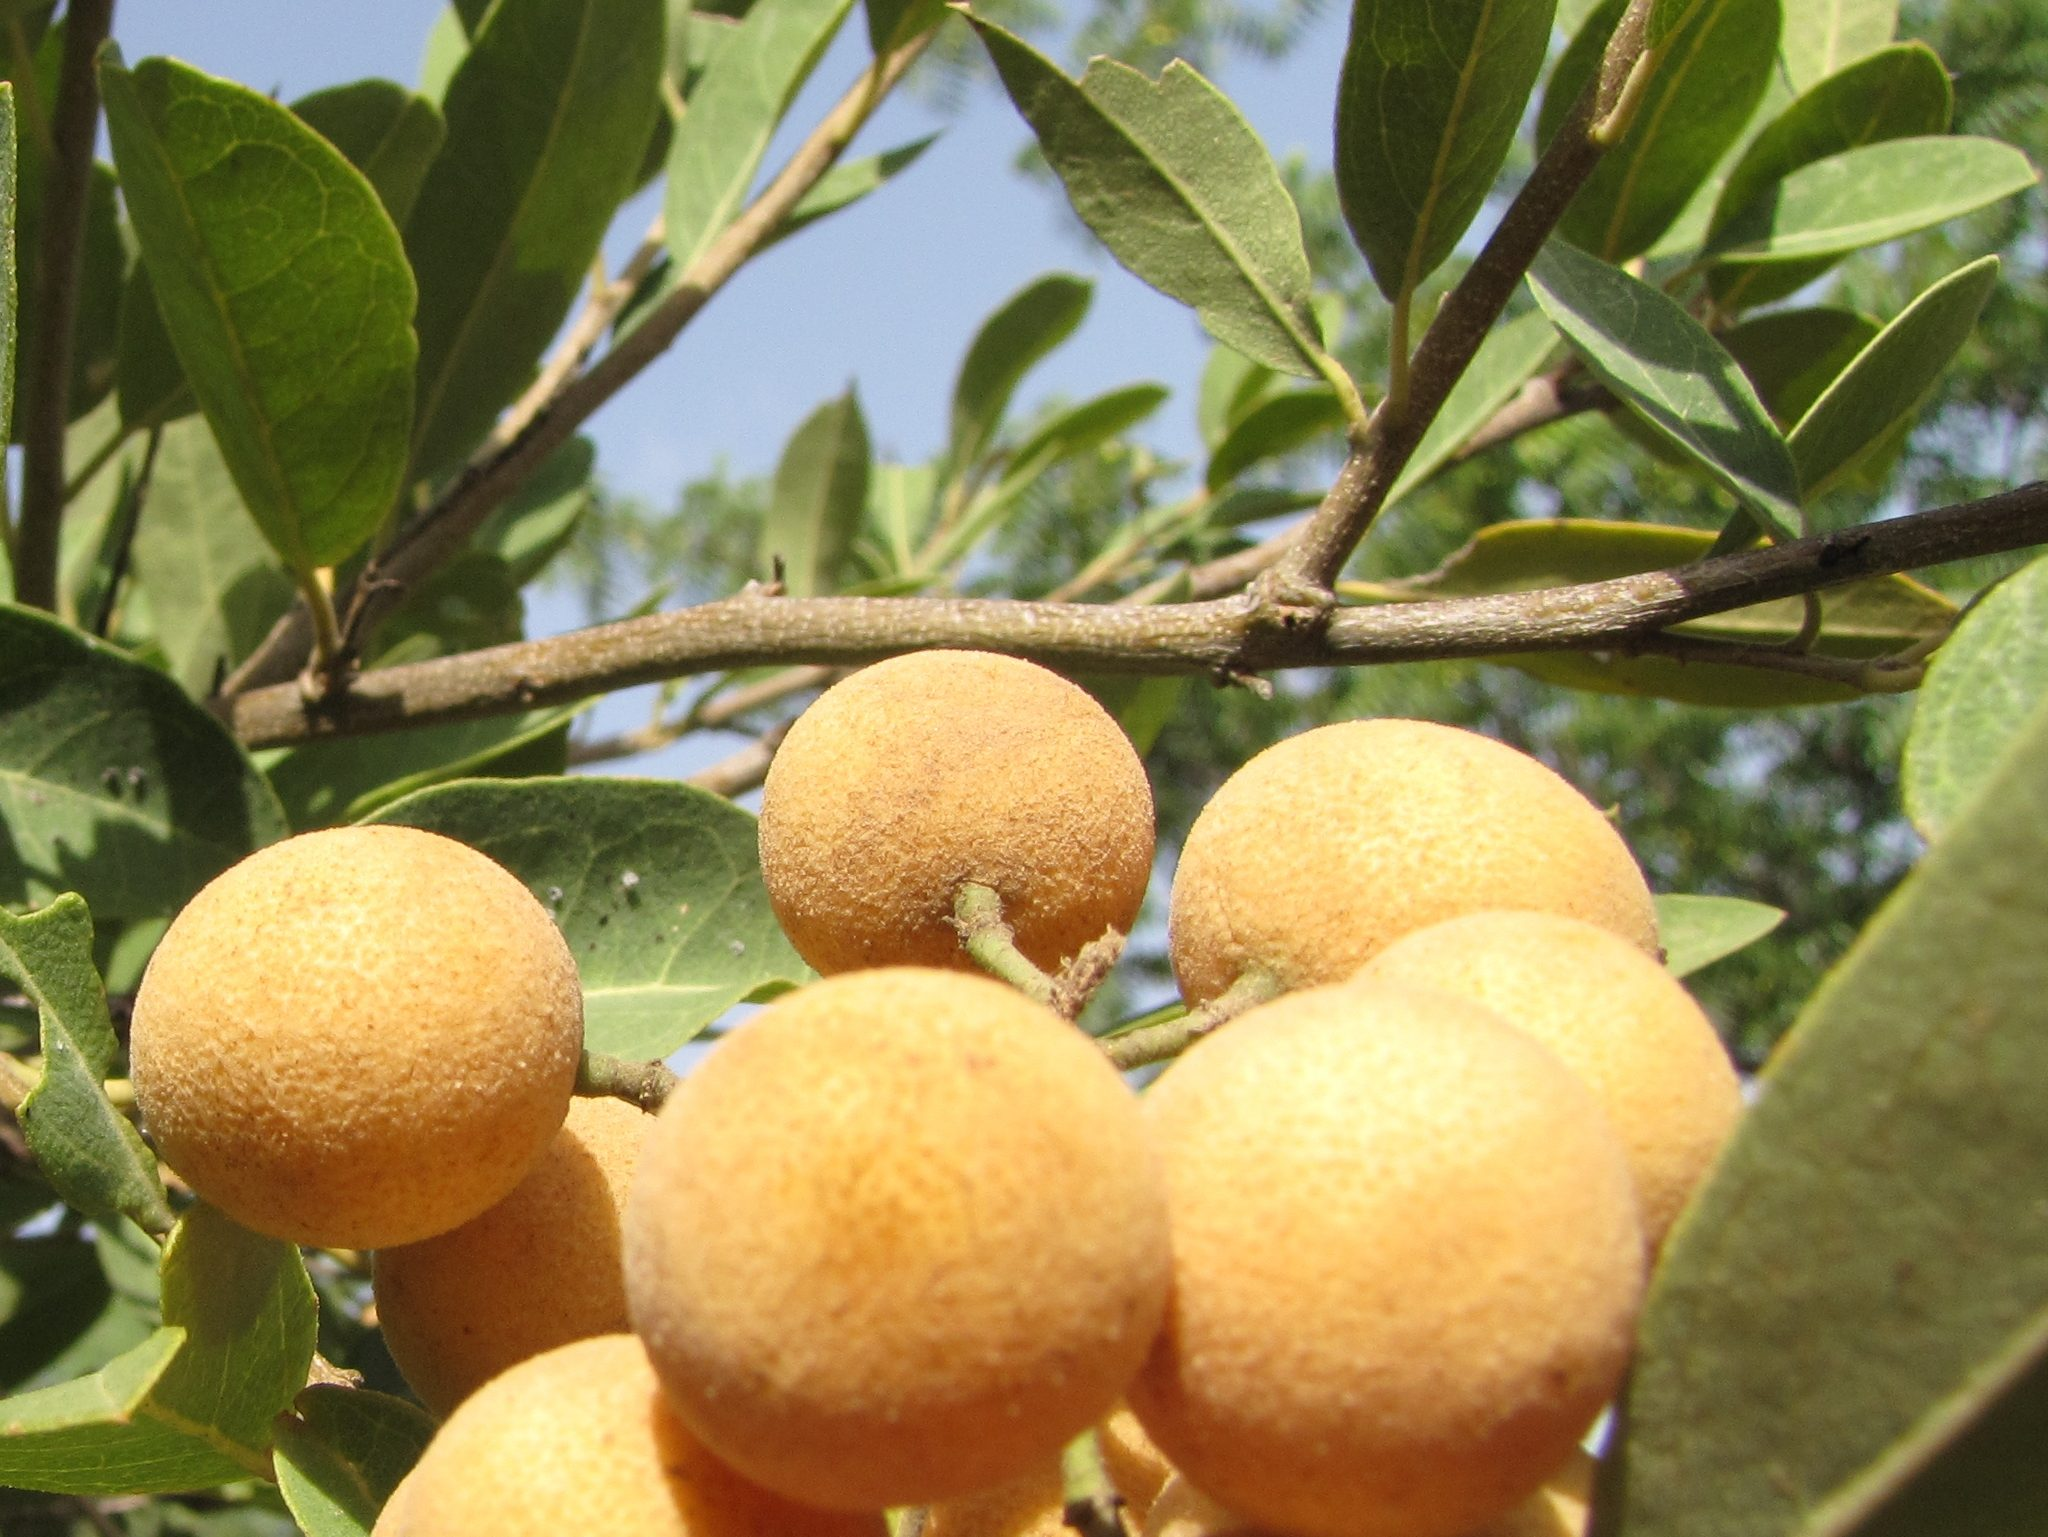 Hanza_fruits_and_leaves_Zinder_Republic_of_Niger